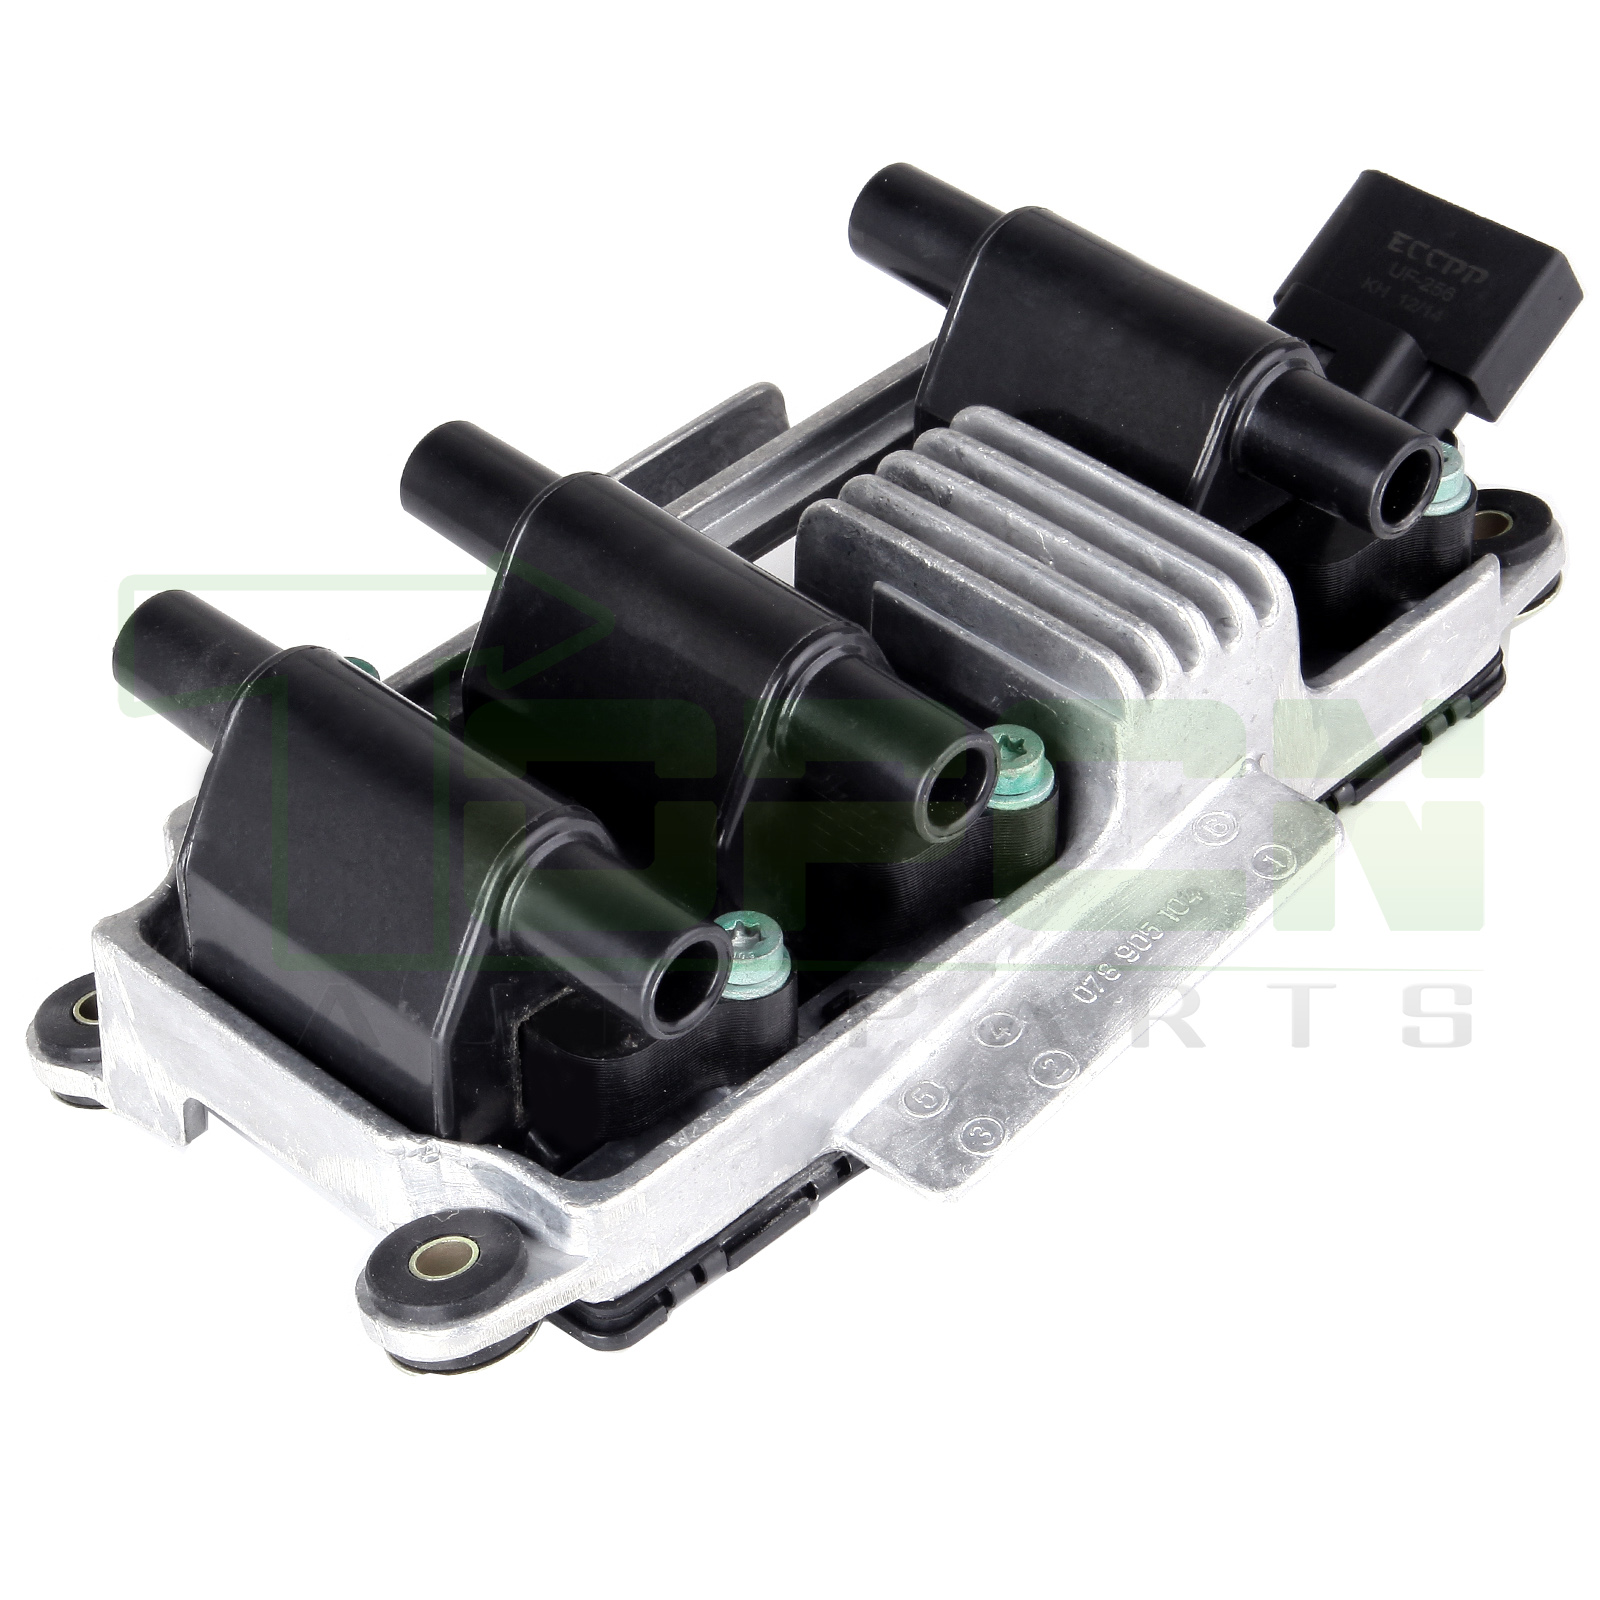 Service Manual 1998 Audi Riolet Ignition Coil Removal